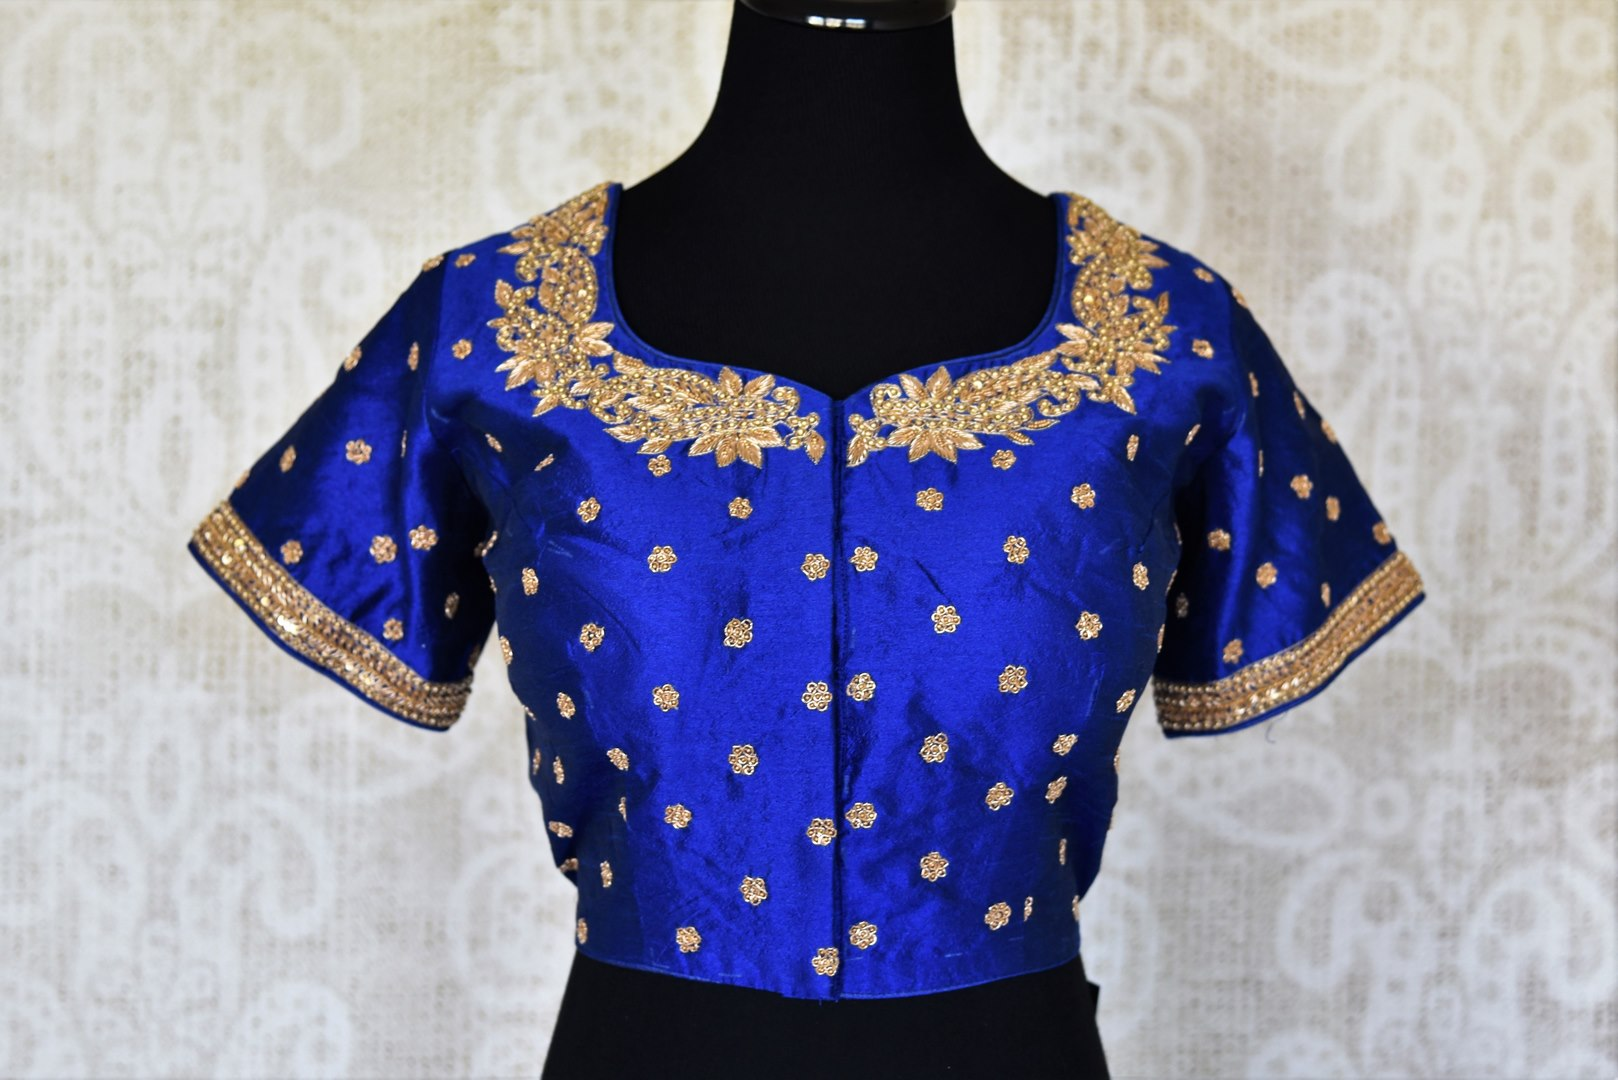 Shop blue raw silk embroidered saree blouse online in USA. Complete your saree look with exquisite designer saree blouses from Pure Elegance Indian clothing store in USA. -front